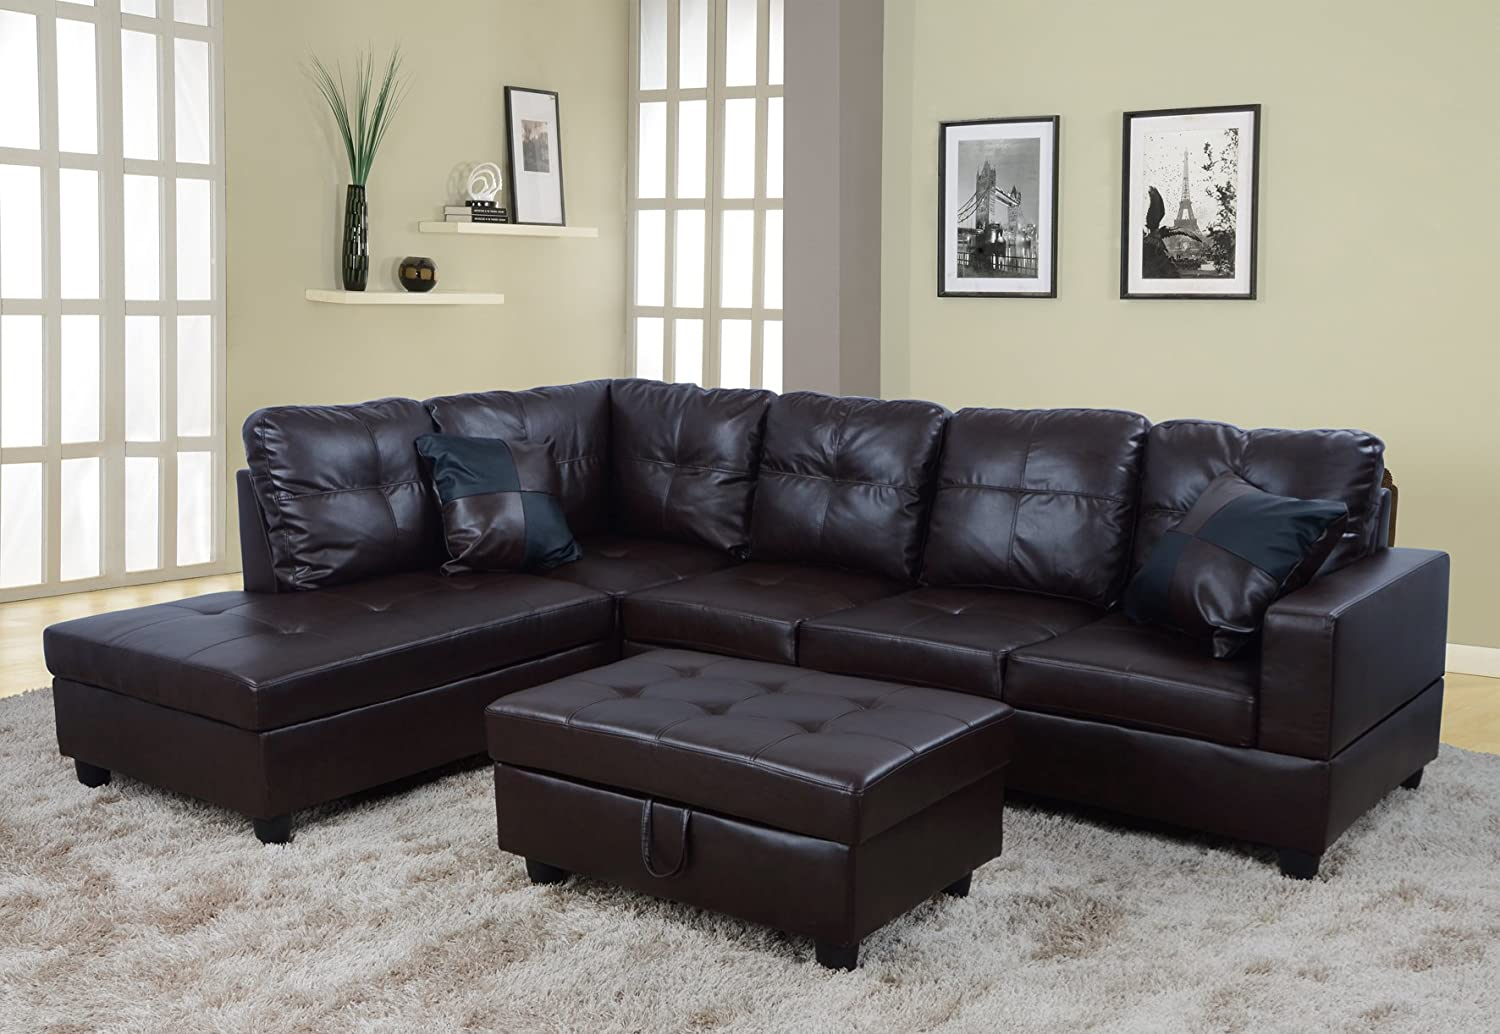 Beverly Fine Funiture Sectional Sofa Set Caramel